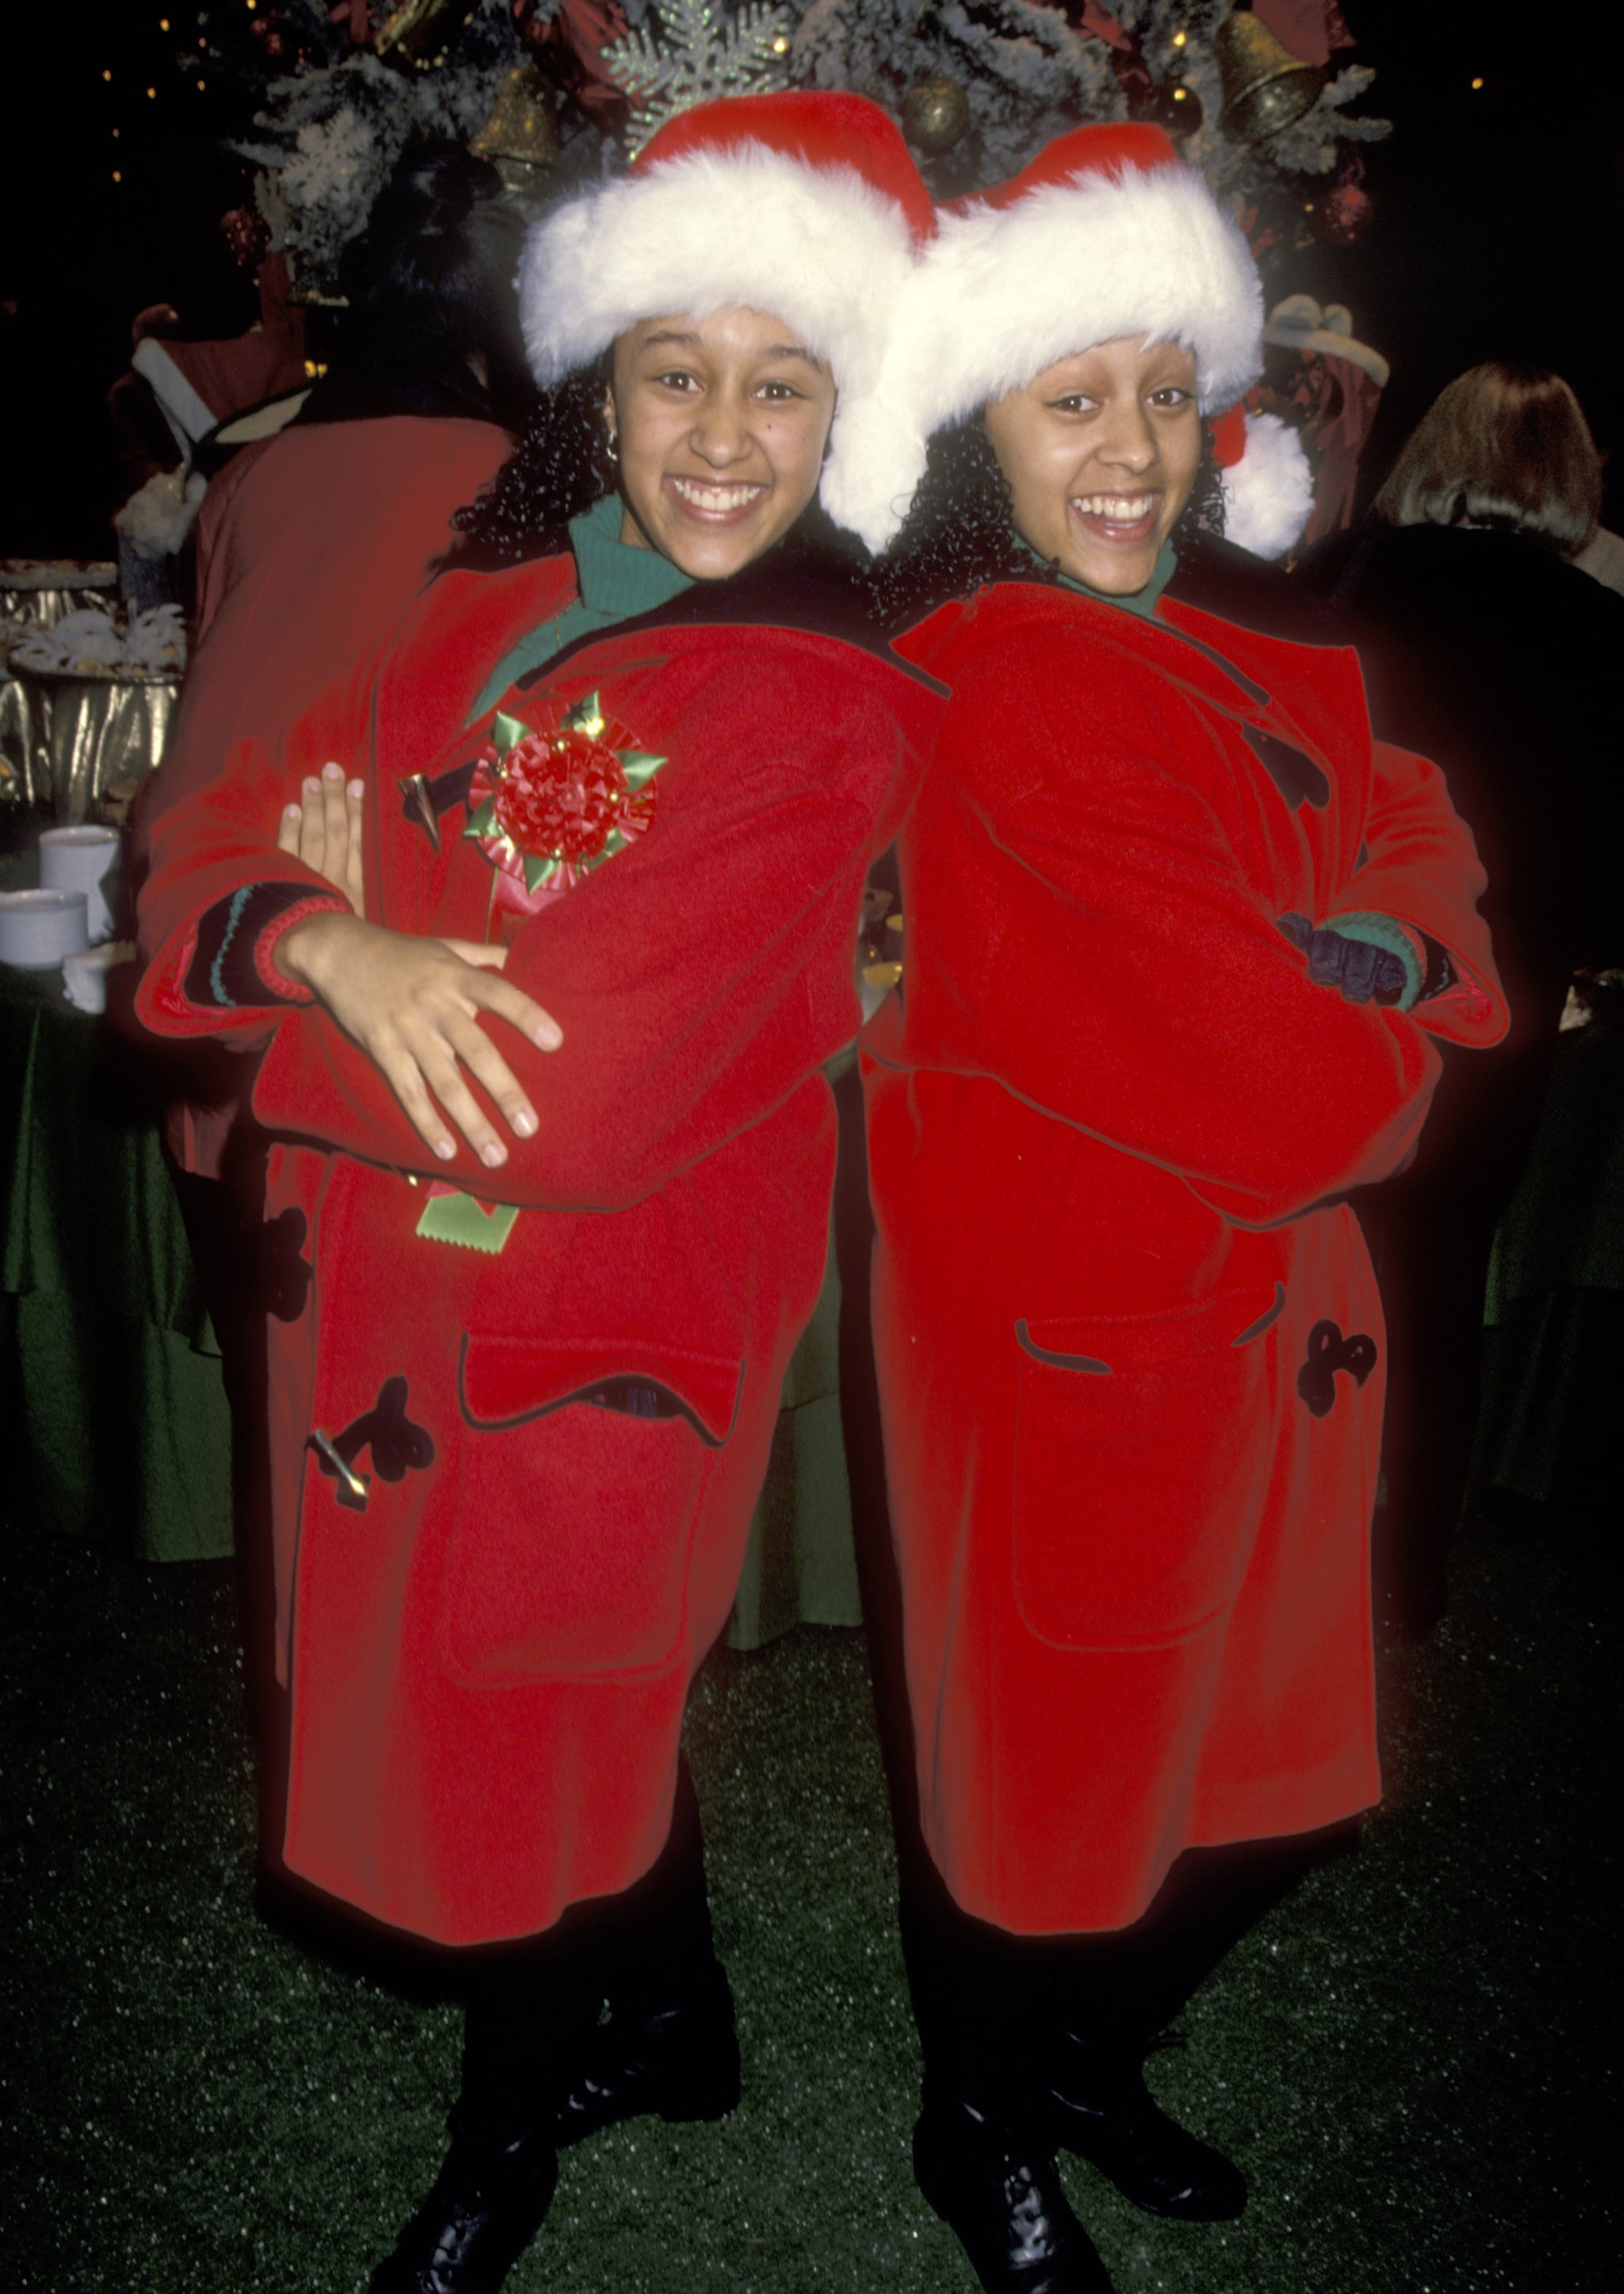 Actors Tamera Mowry and Tia Mowry attend the 63rd Annual Hollywood Christmas Parade on November 27, 1994 at KTLA Studios in Hollywood, California. (Photo by Ron Galella, Ltd./Ron Galella Collection via Getty Images)